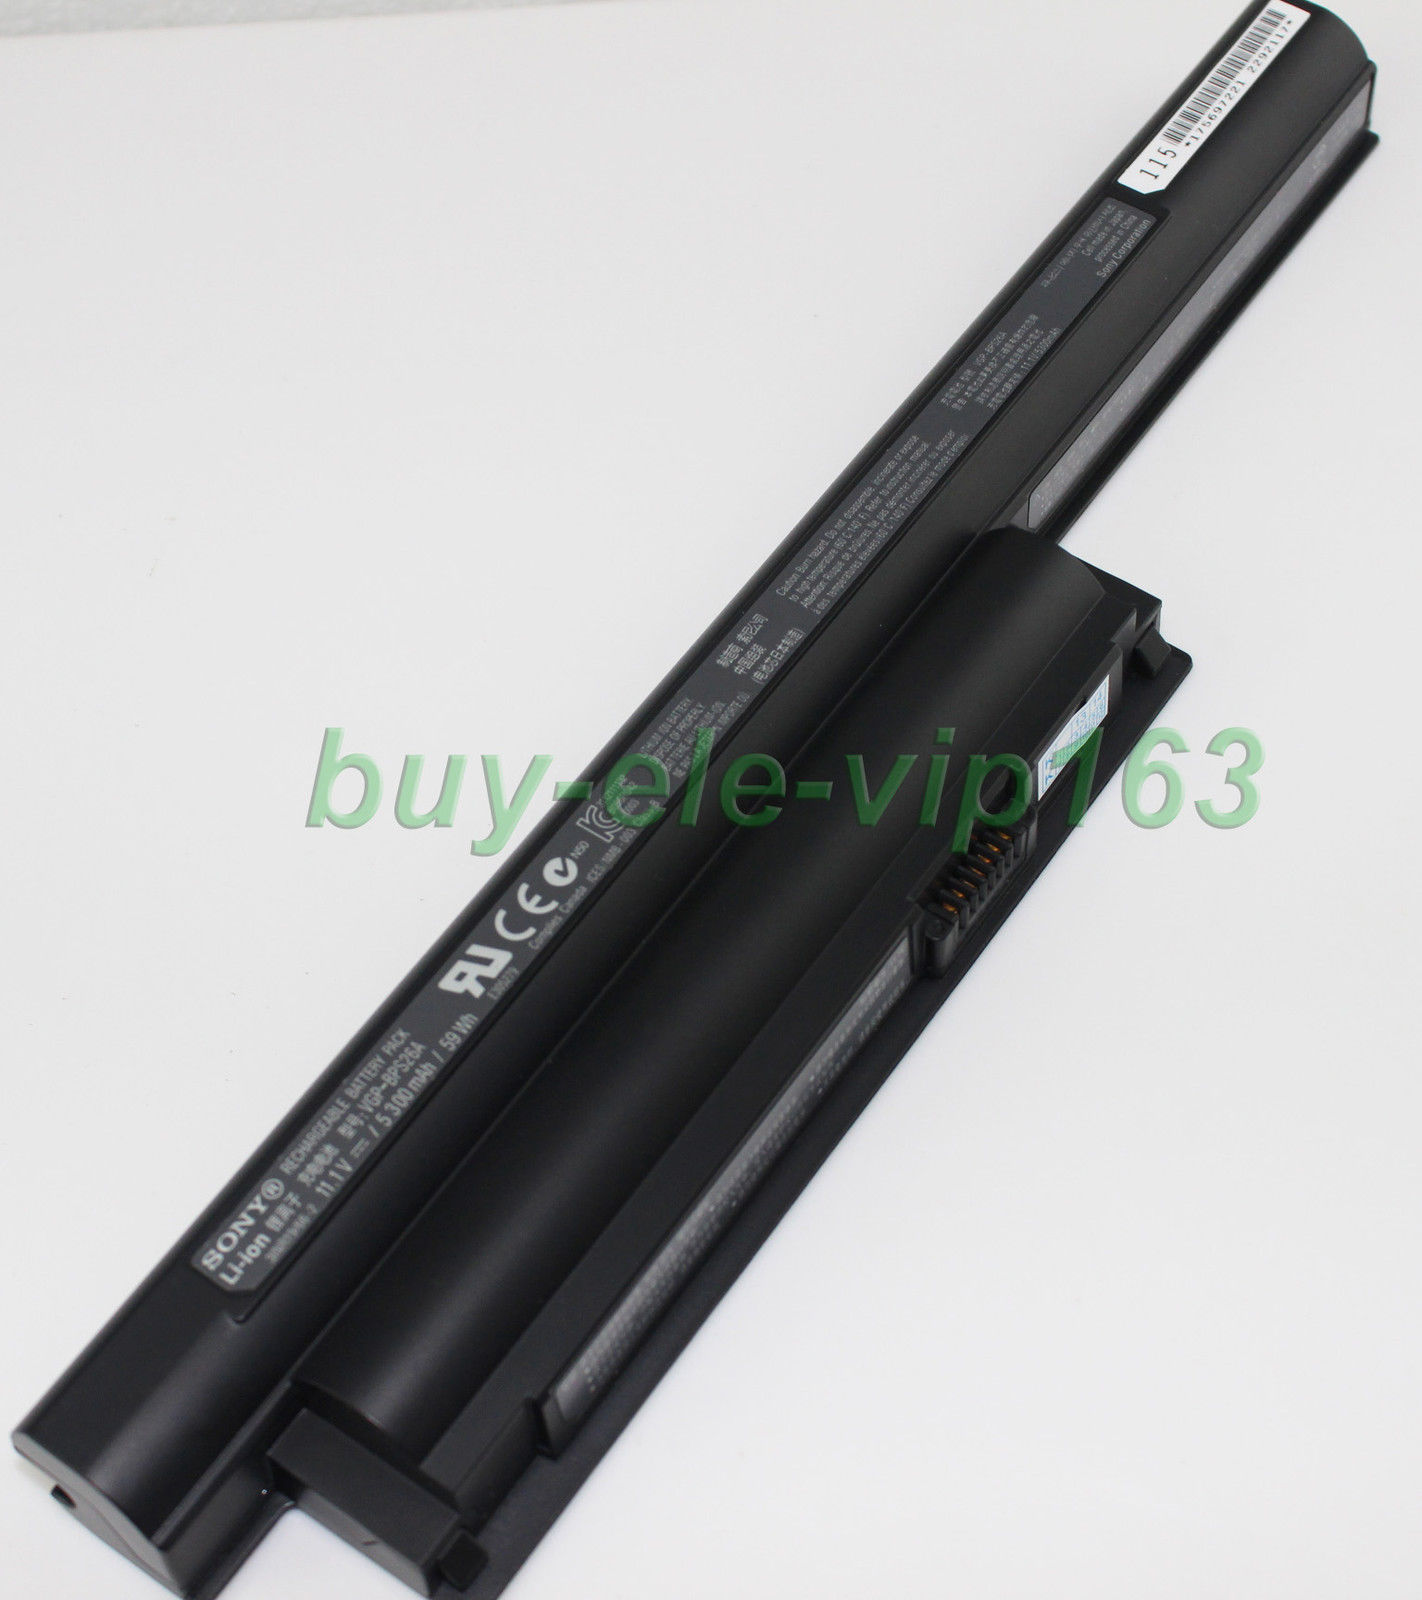 Pin Sony - Battery Sony Vaio CA CB EG EH EL EJ EK Series